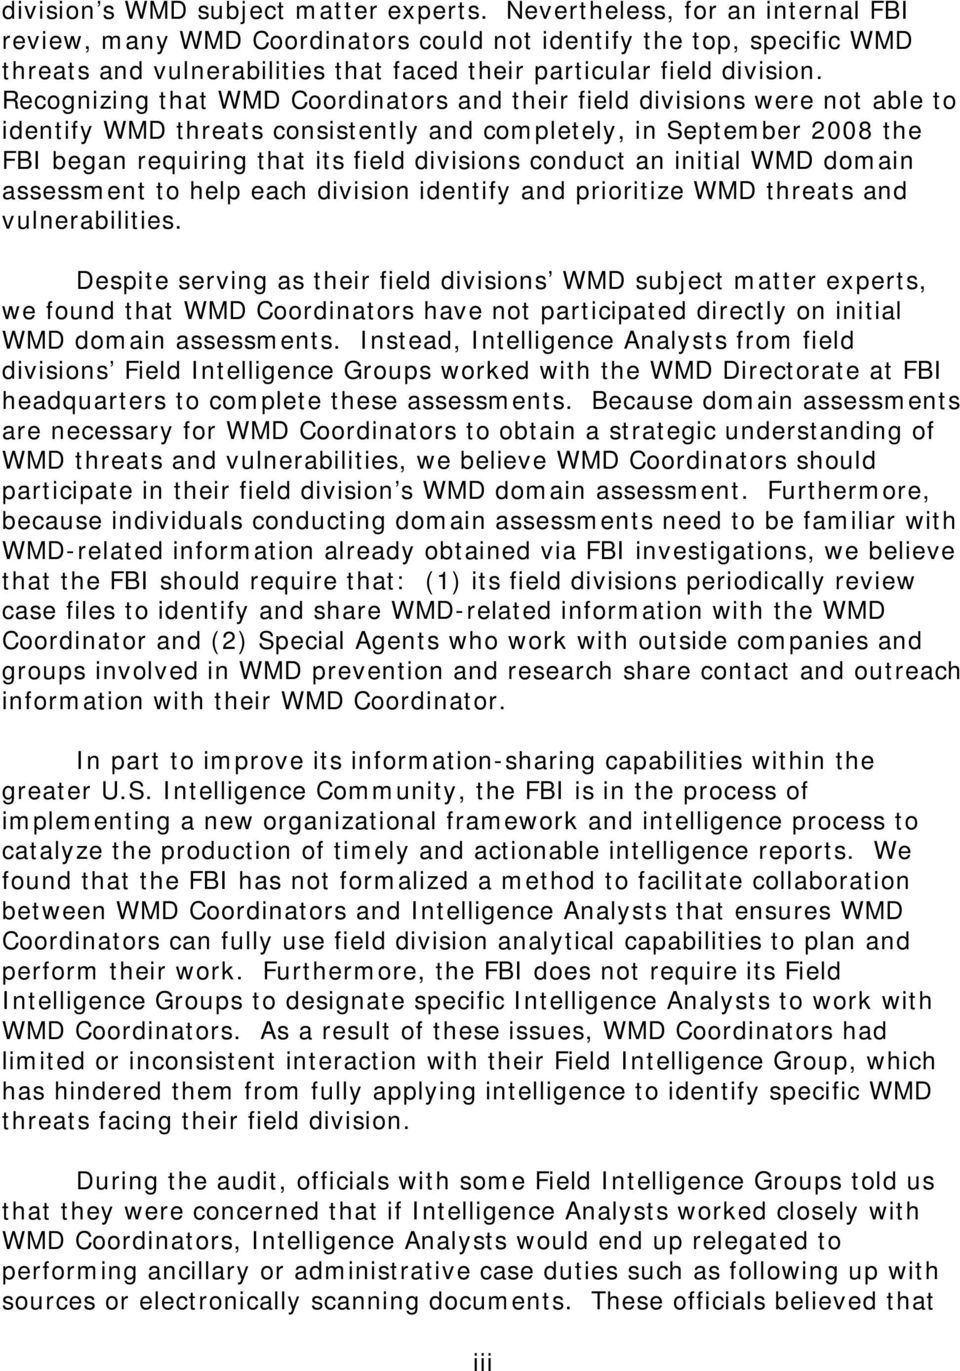 Recognizing that WMD Coordinators and their field divisions were not able to identify WMD threats consistently and completely, in September 2008 the FBI began requiring that its field divisions